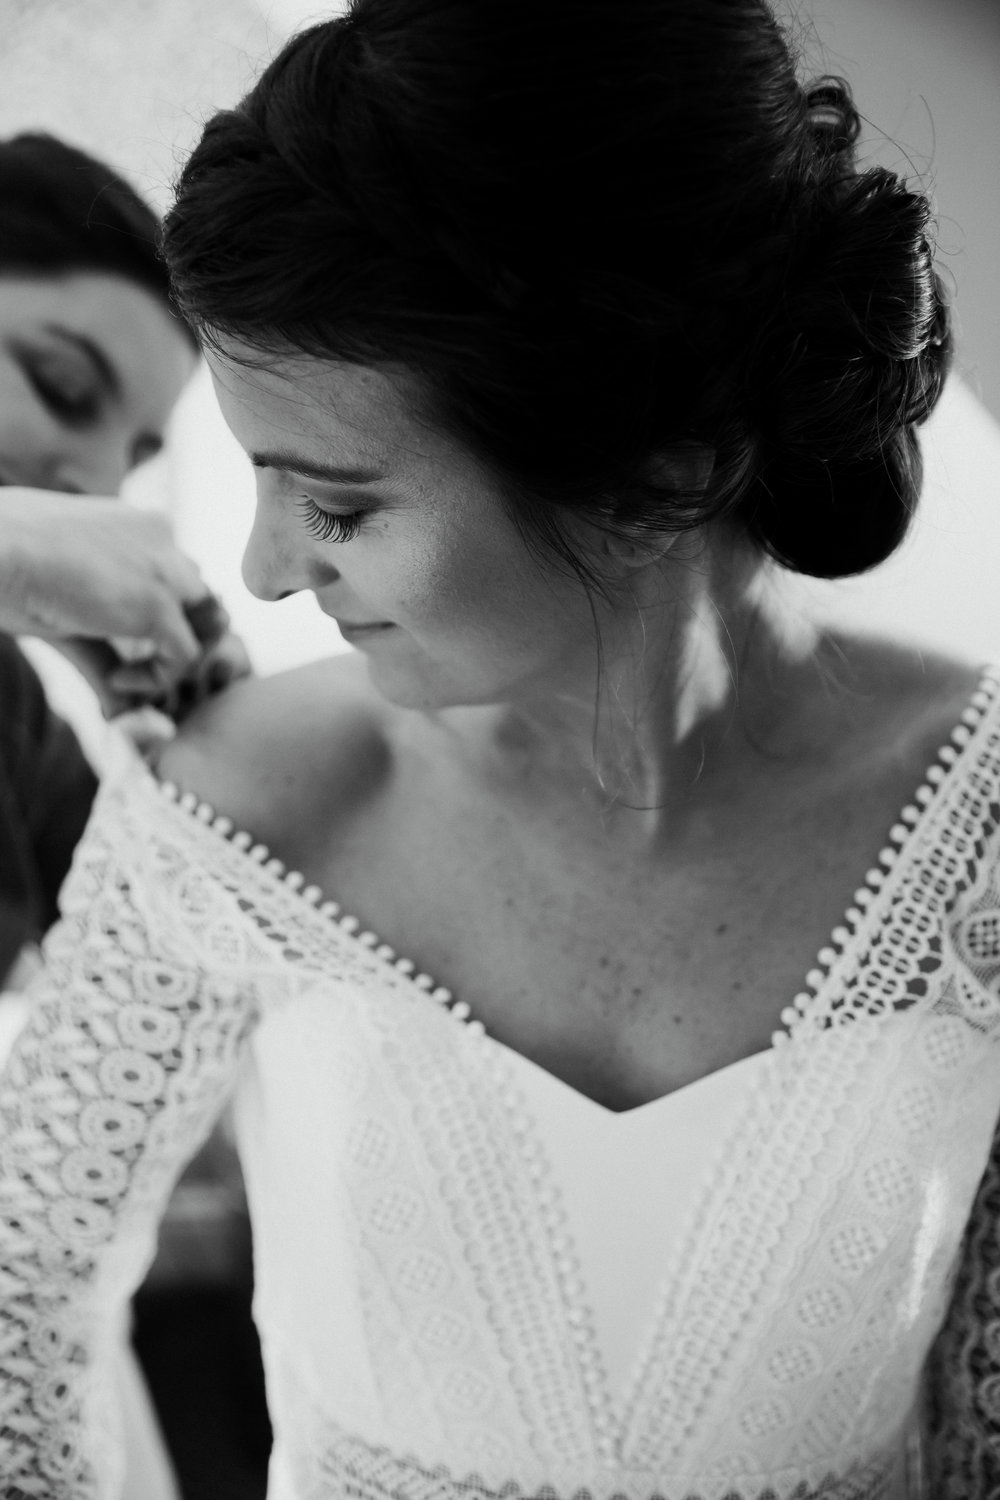 Vanessa getting into her wedding dress at The Chilterns wedding